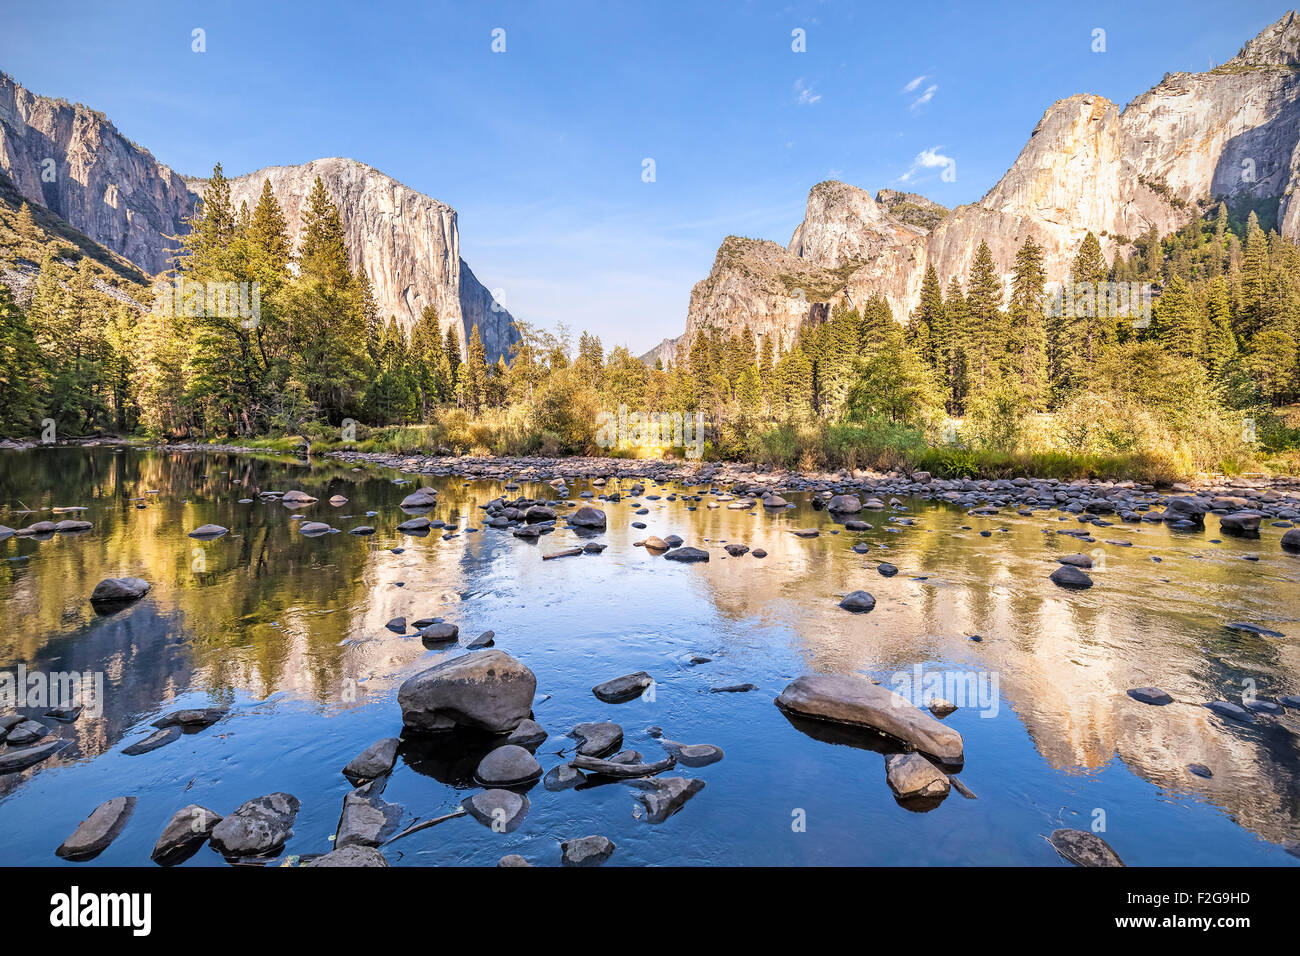 Merced River im Yosemite National Park bei Sonnenuntergang, Kalifornien, USA. Stockbild